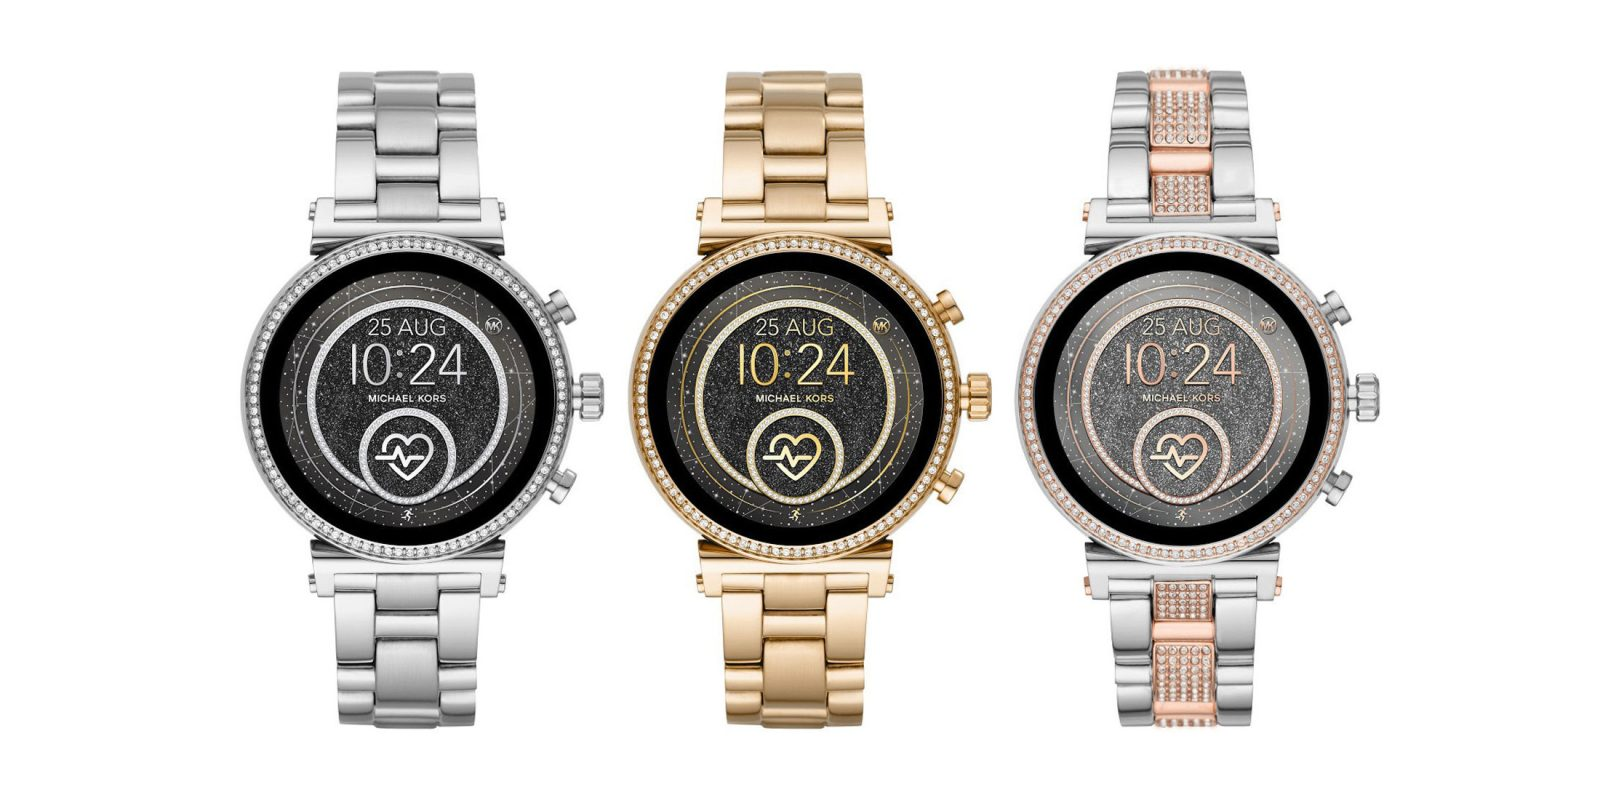 QnA VBage Michael Kors Sofie 2.0 refresh adds NFC for Google Pay, GPS, heart rate monitoring